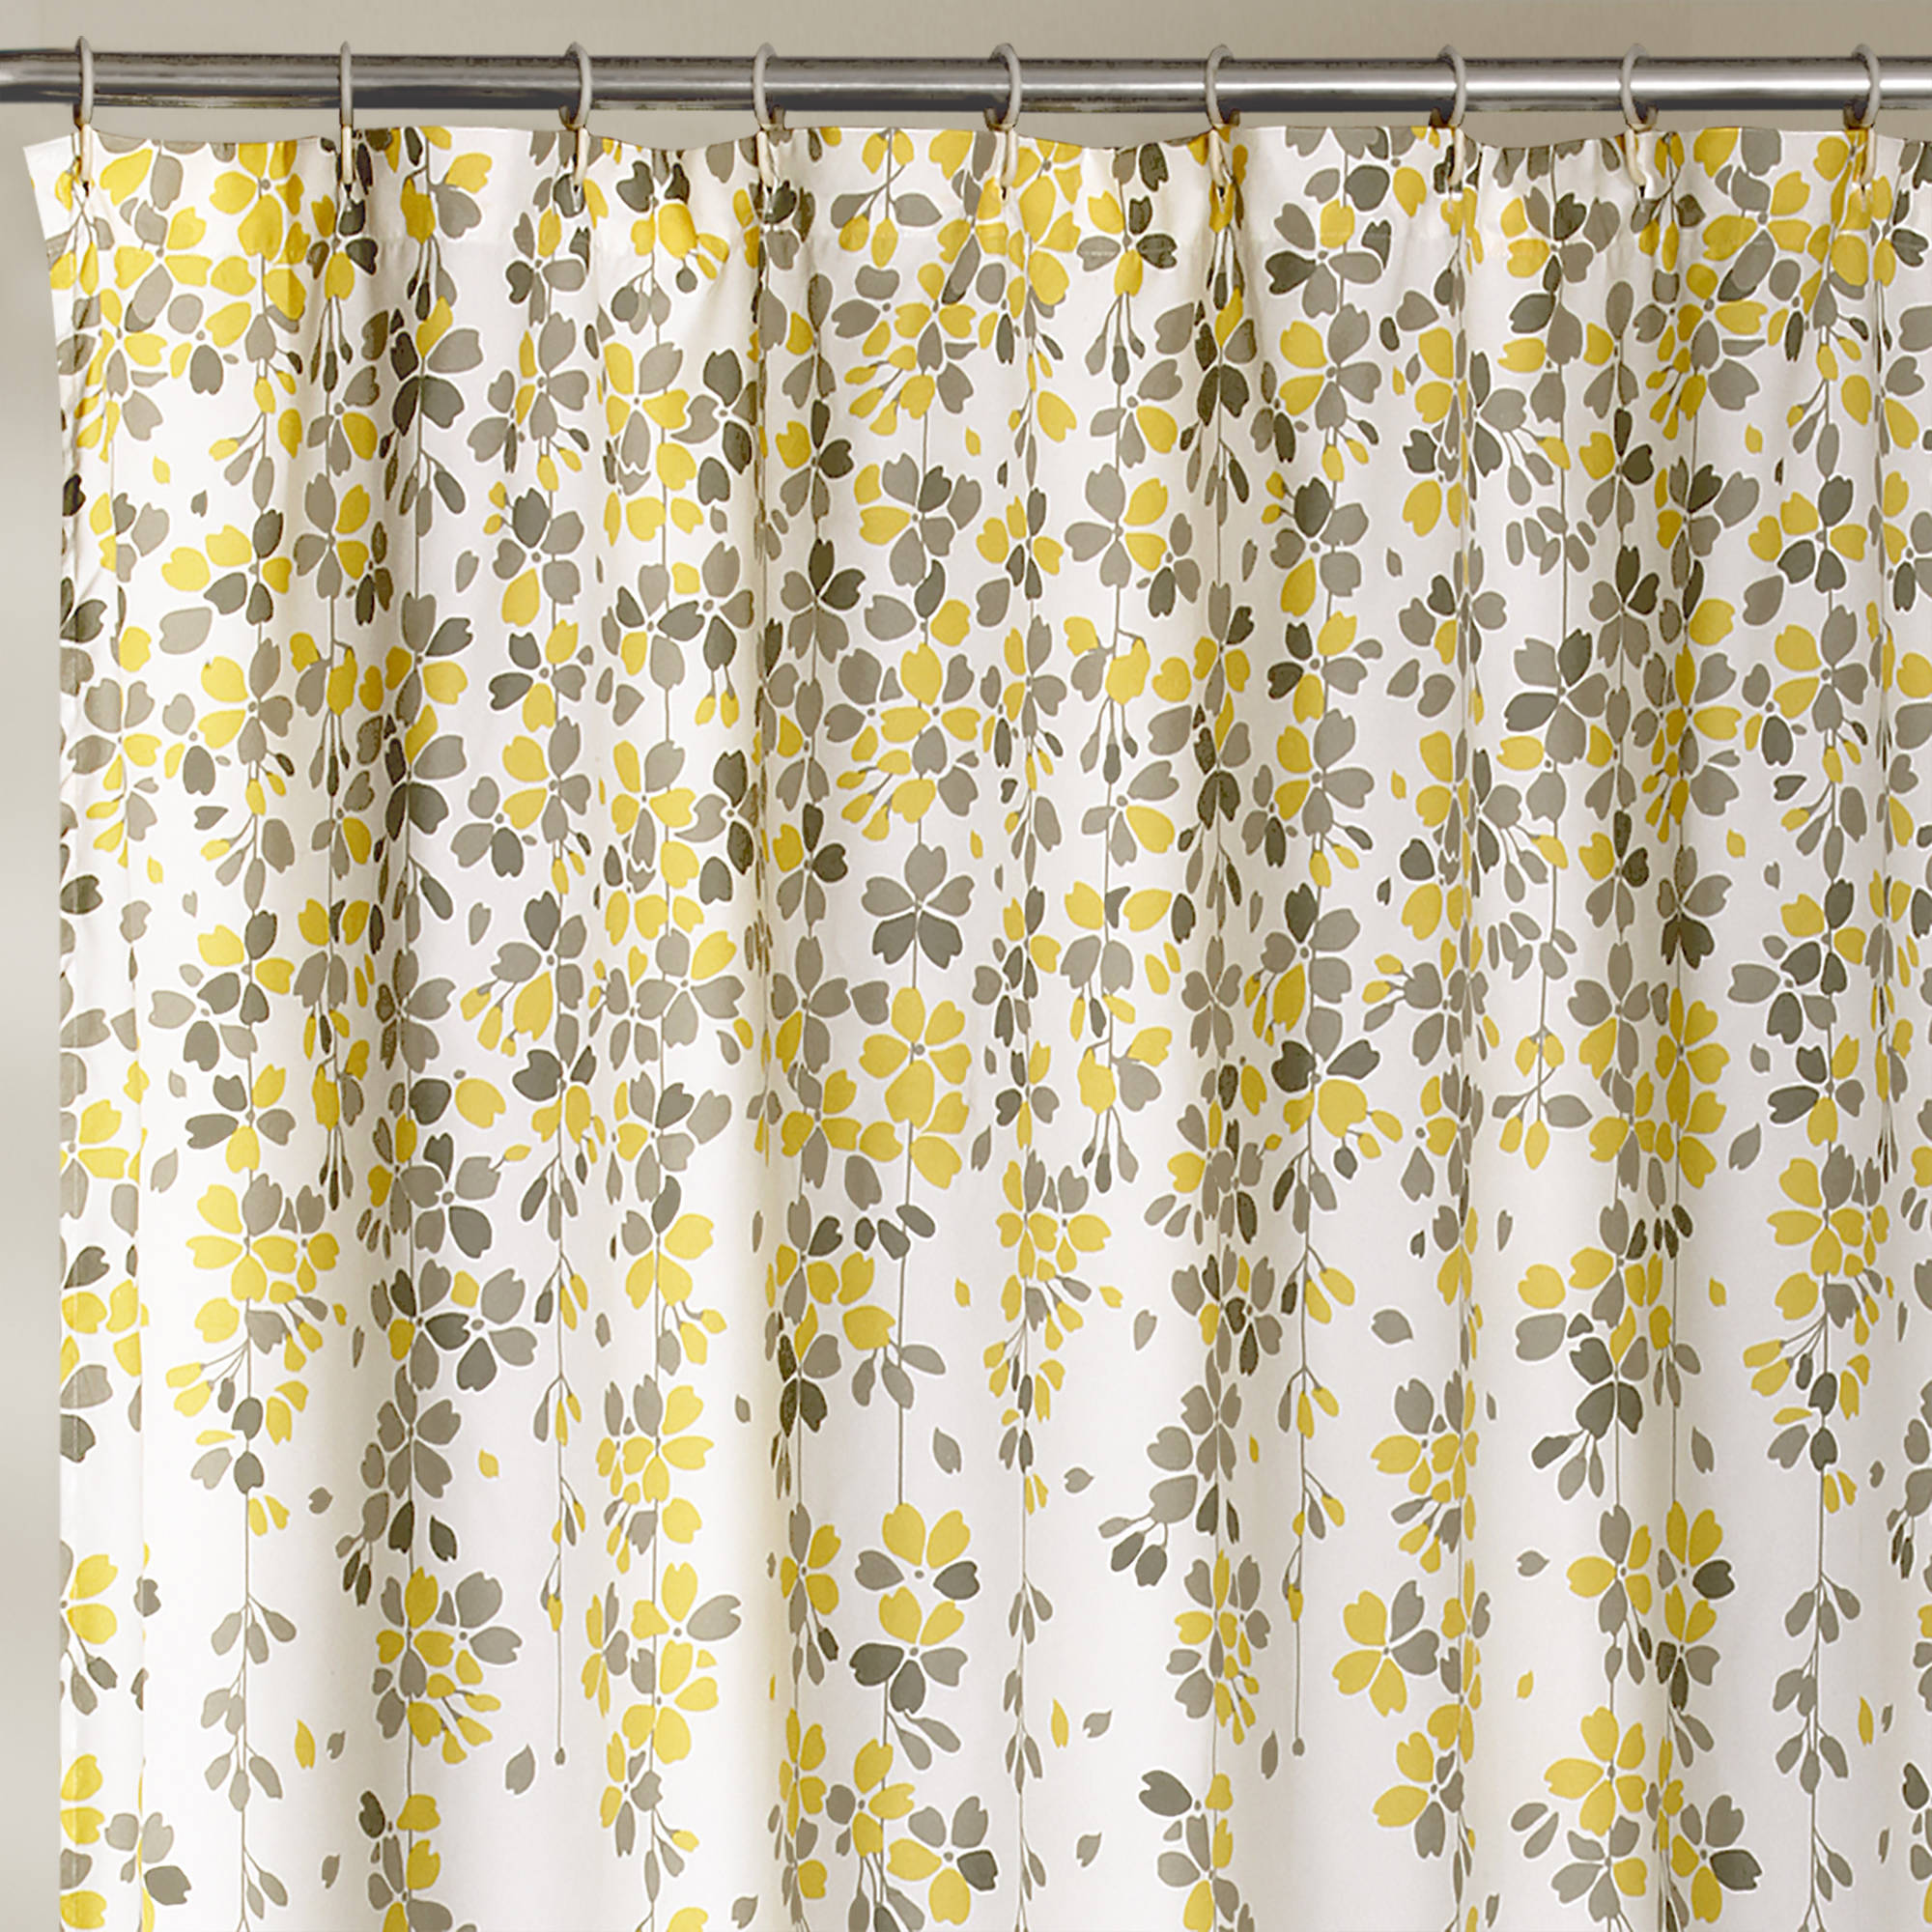 Weeping Flower Shower Curtain Yellow Gray